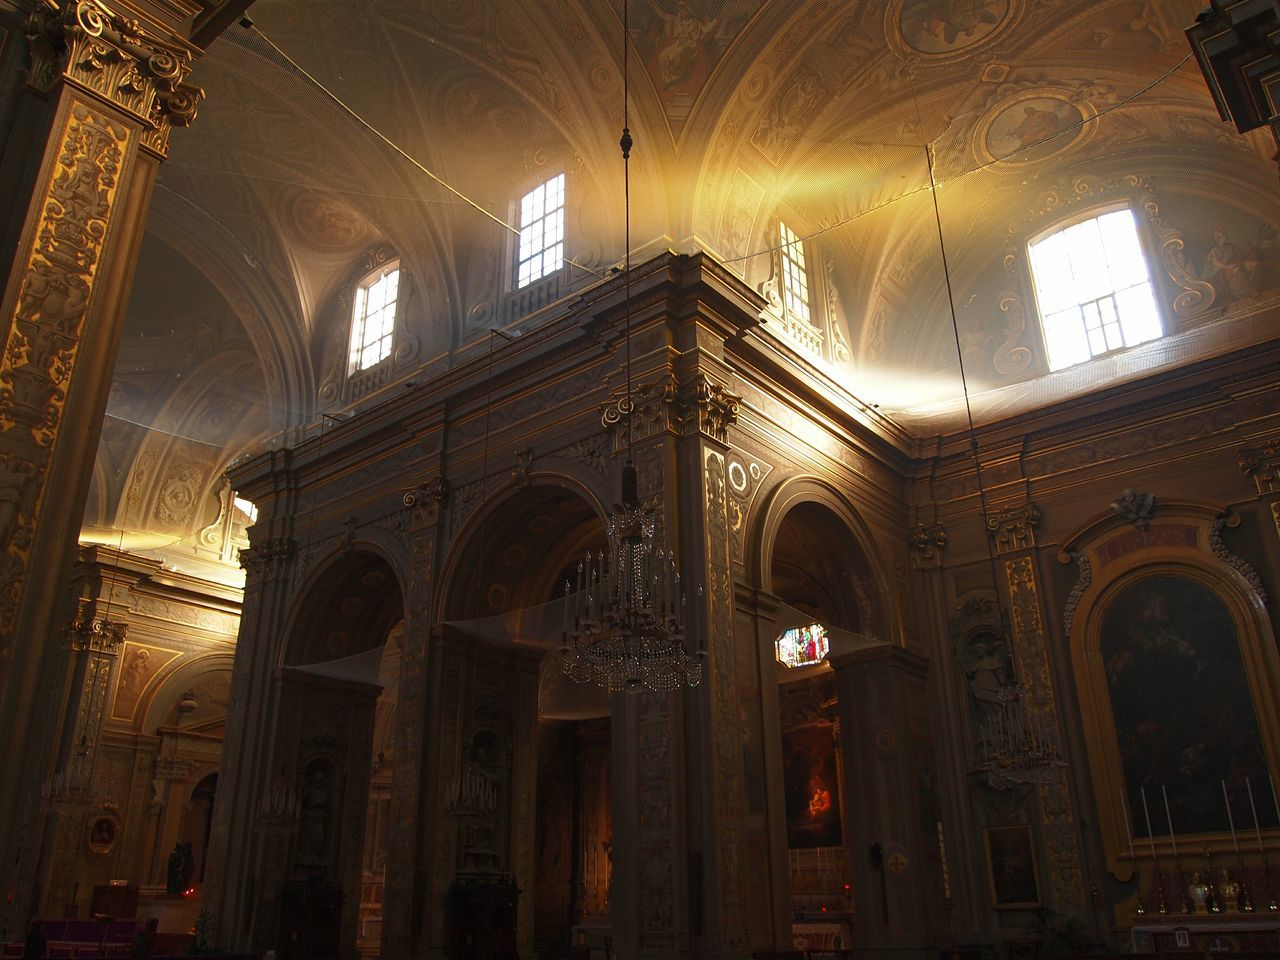 Natural light Architecture Majestic Baroque Ferrara Italy Cathedral Lights Light Soft Light Darkness And Light Light And Shadow Windows Divine Christianity Beauty Beautiful Arcades Backgrounds EyeEm Best Shots Eyeemphotography EyeEm Gallery Precious Art And Craft Interior Indoors